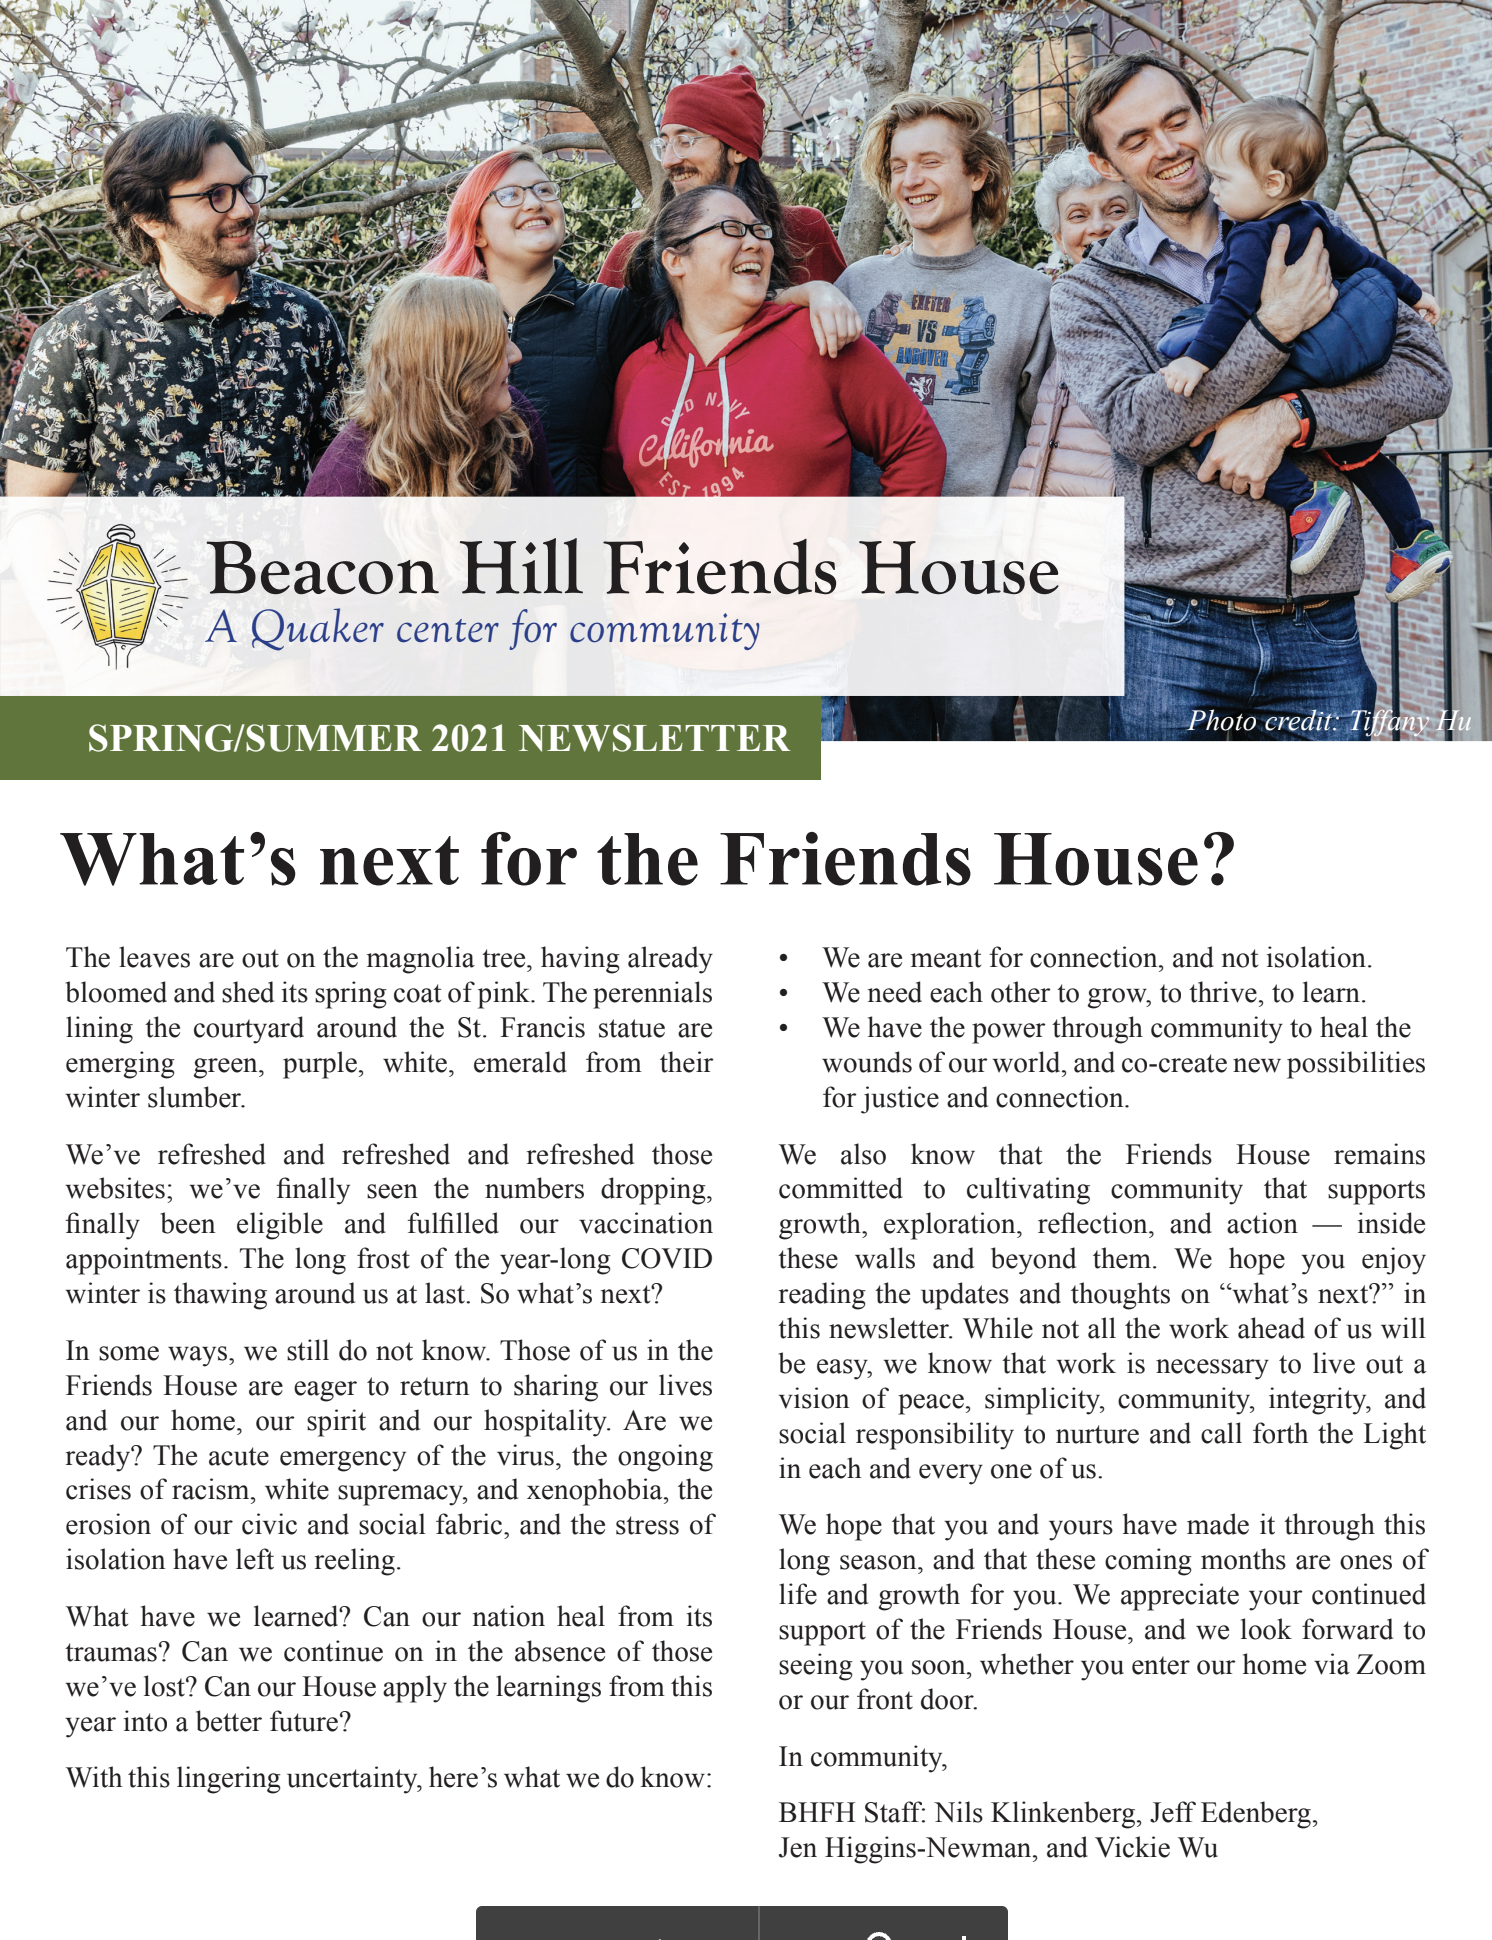 Front page of the Friends House Newsletter: What's next for the Friends House